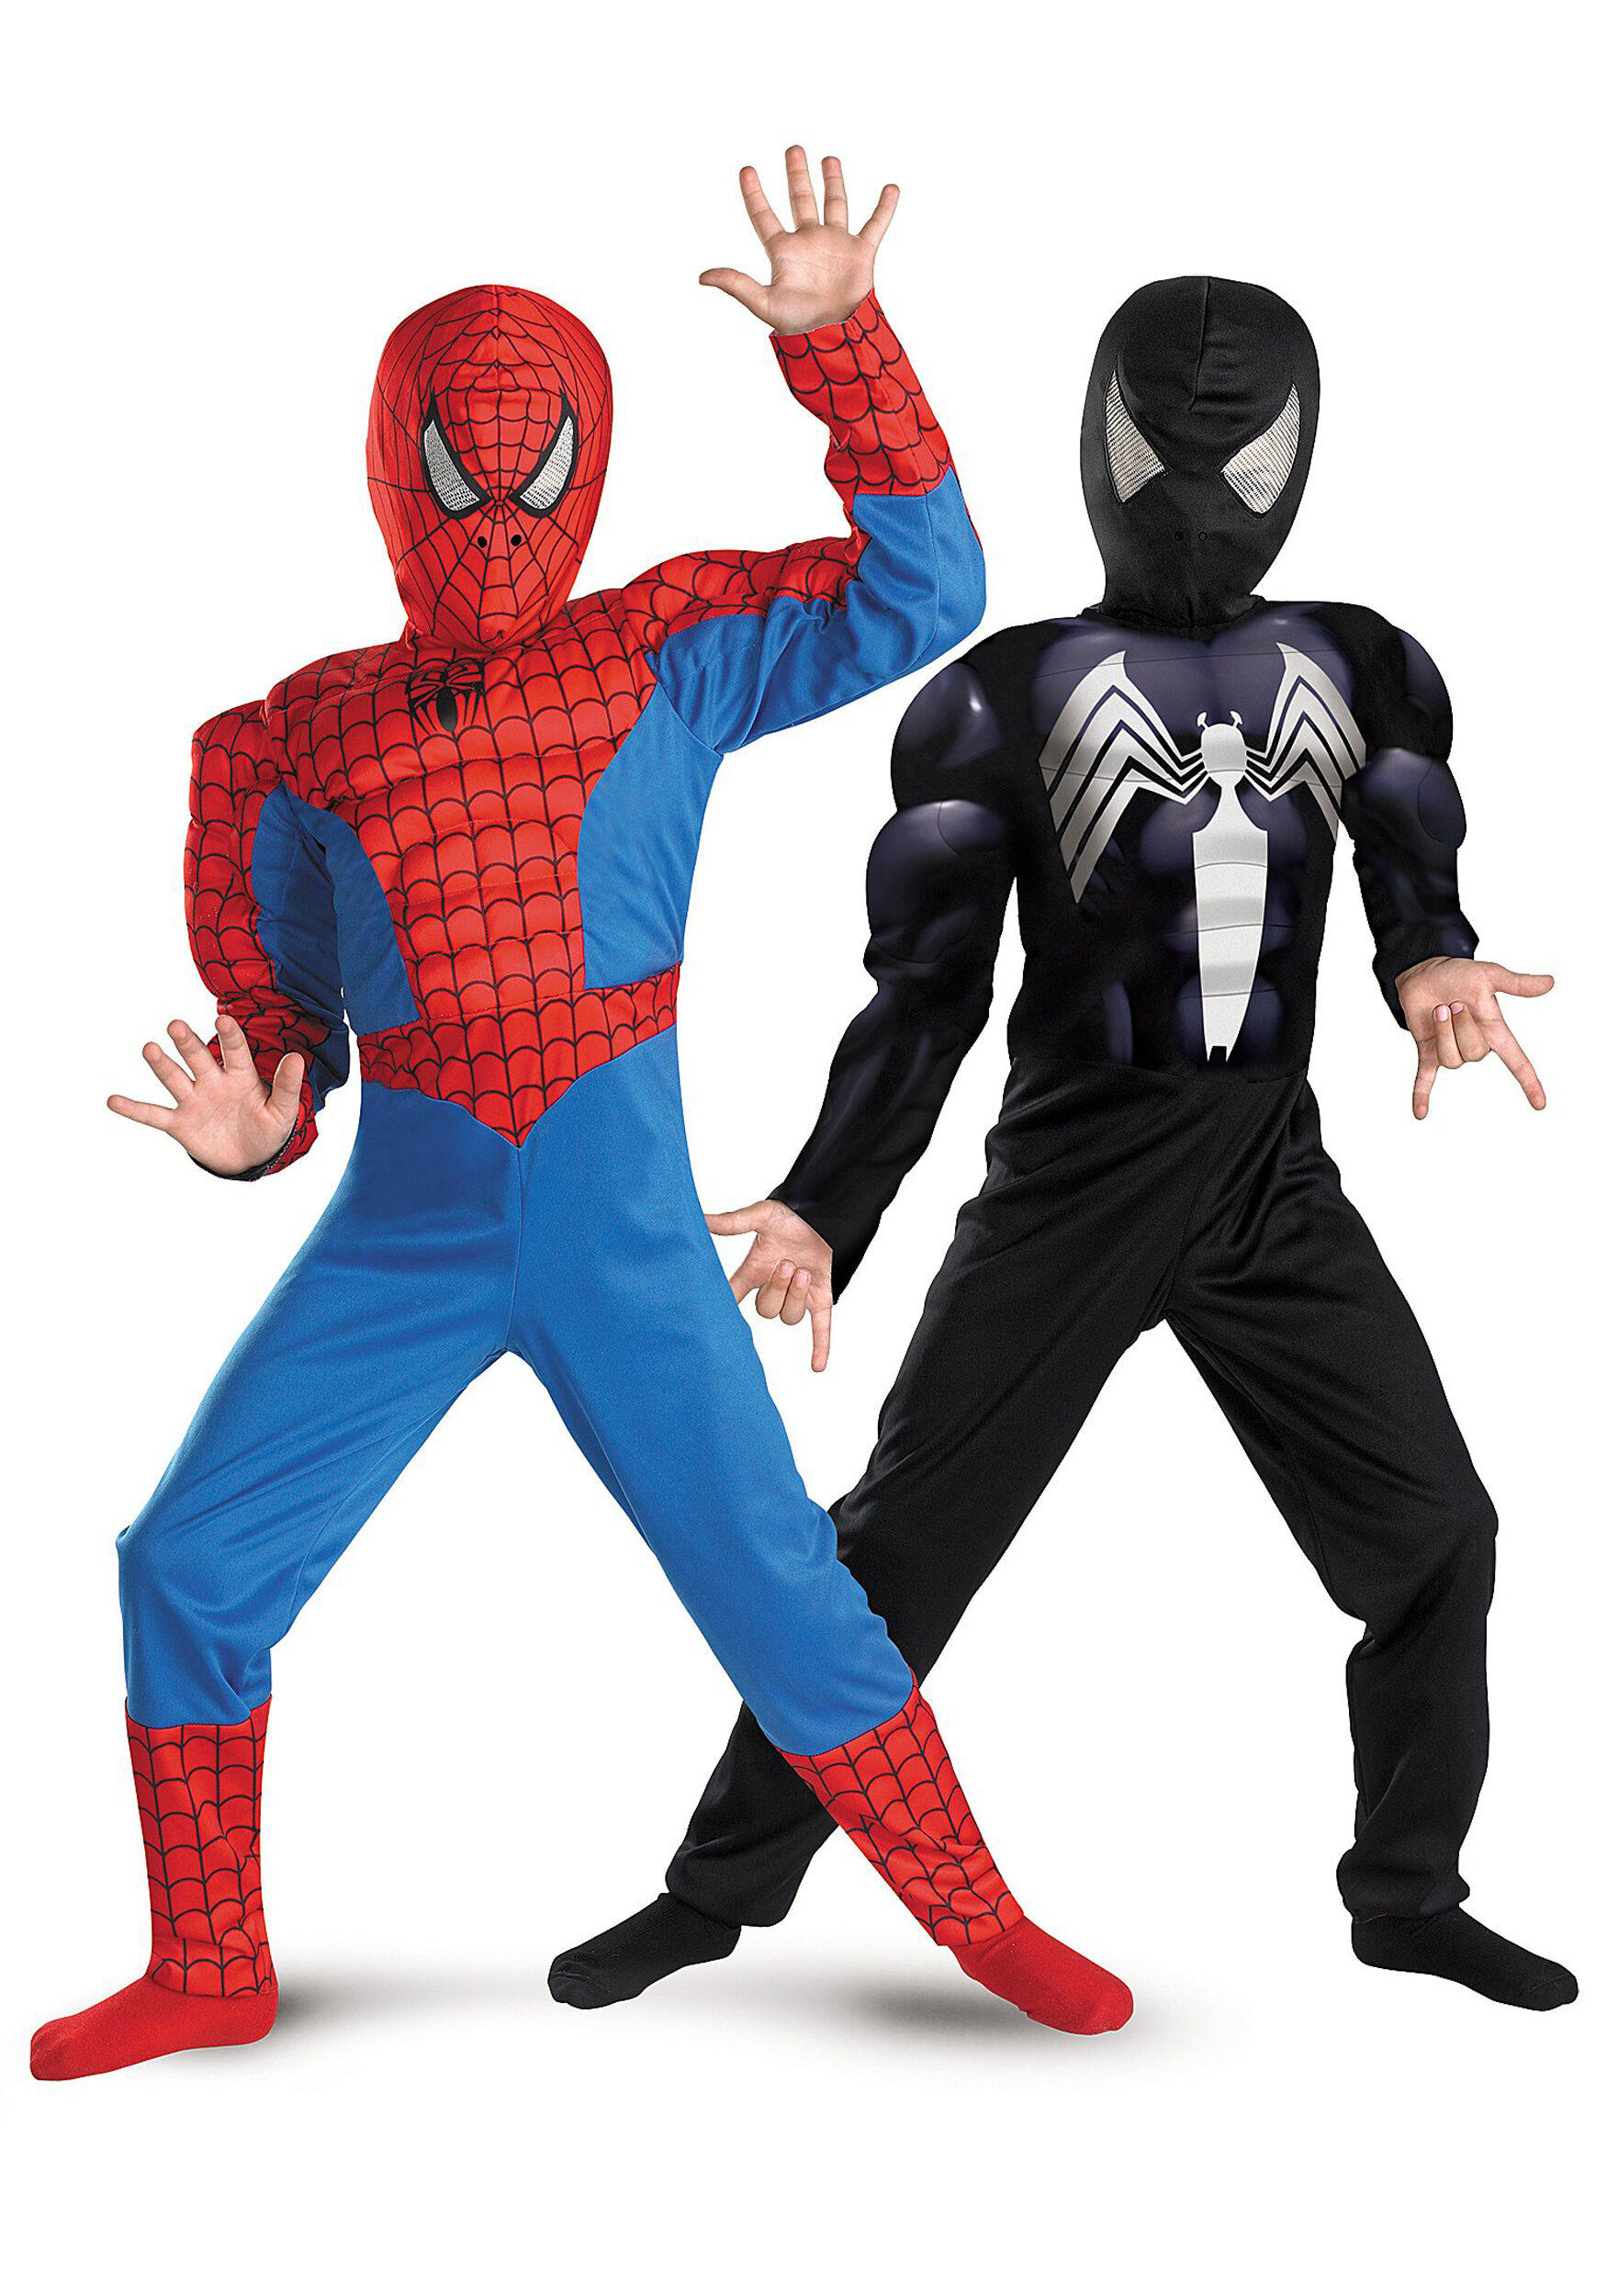 Reversible SpiderMan 3 Red To Black Muscle Chest Kids Costume - Mr. Costumes  sc 1 st  Mr. Costumes & Reversible SpiderMan 3 Red To Black Muscle Chest Kids Costume - Mr ...